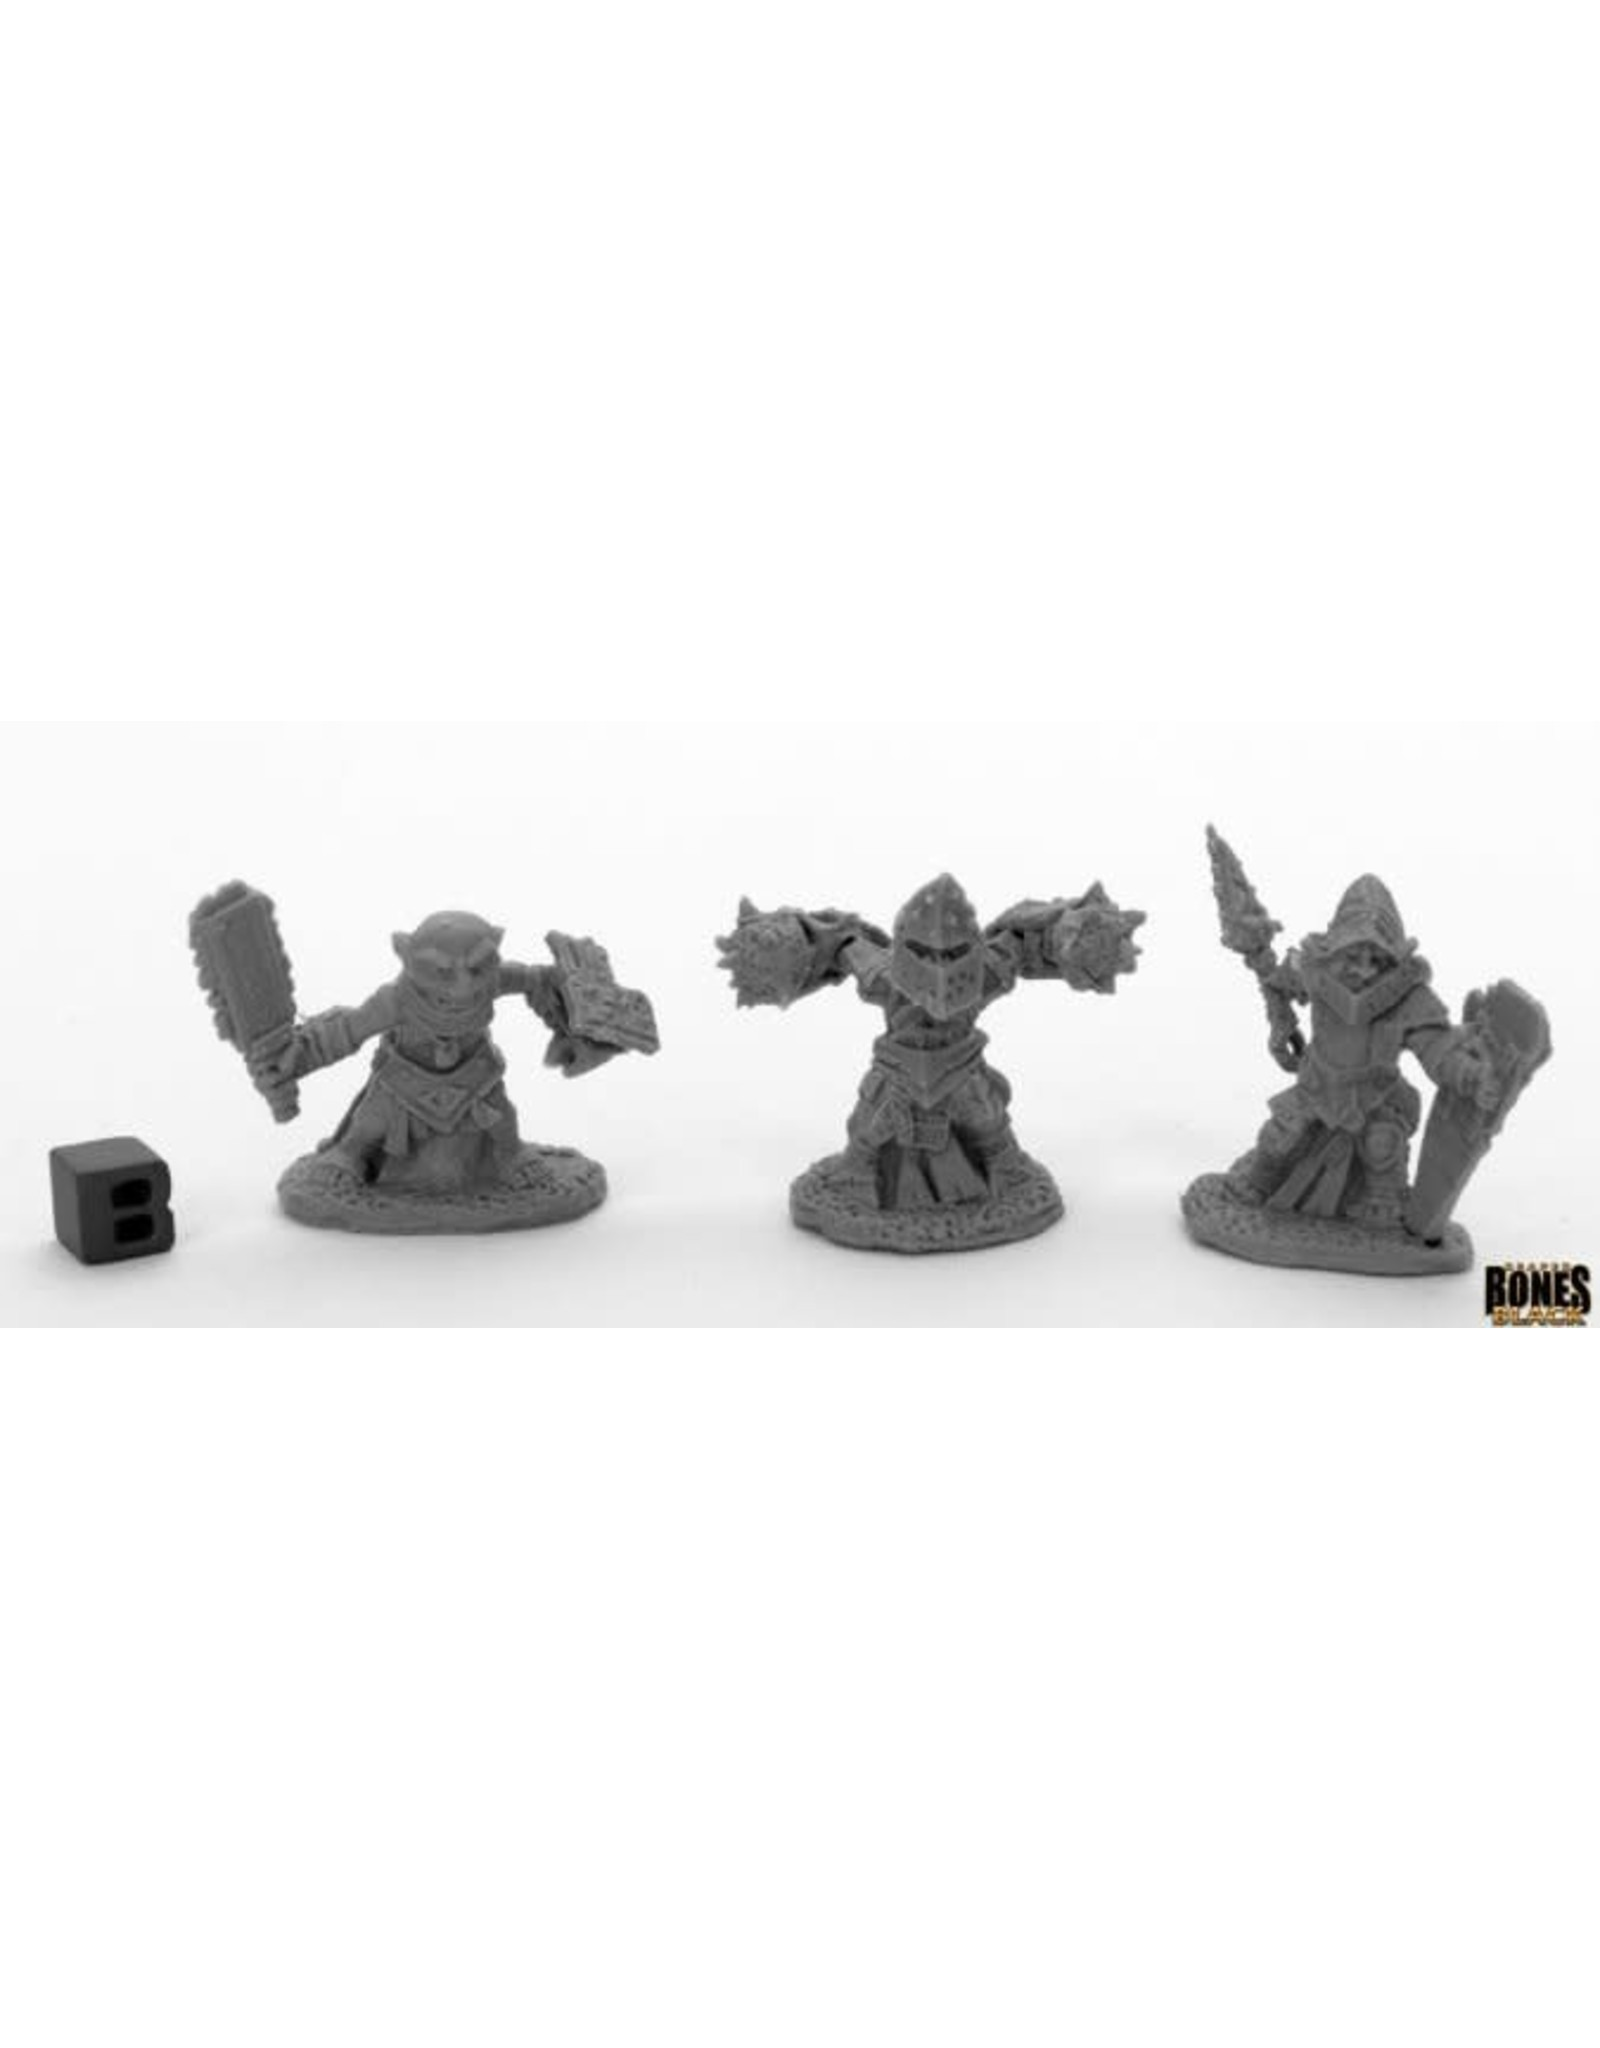 Reaper Miniatures Bones Black: Bloodstone Gnome Warriors